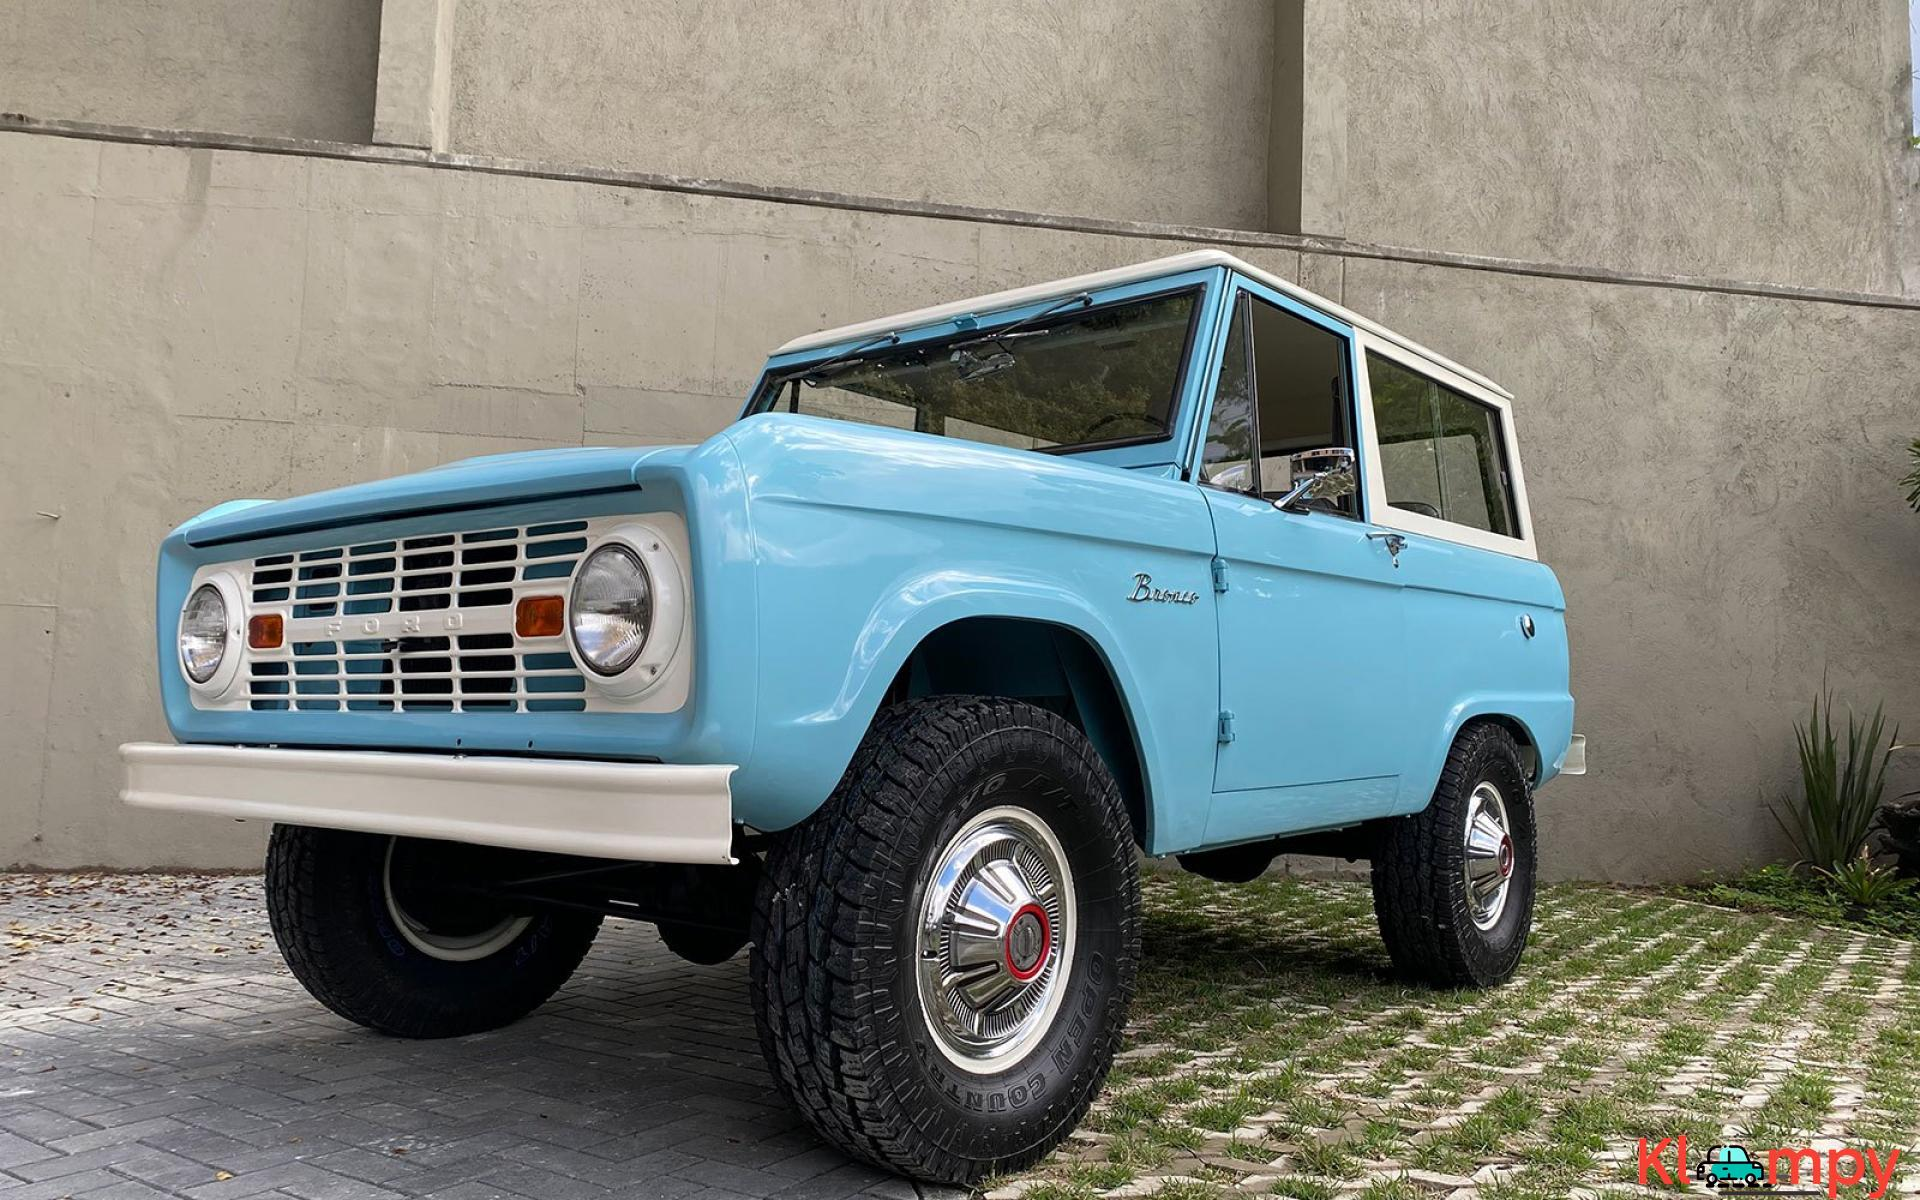 1967 Ford Bronco 170 Inline-Six - 2/21